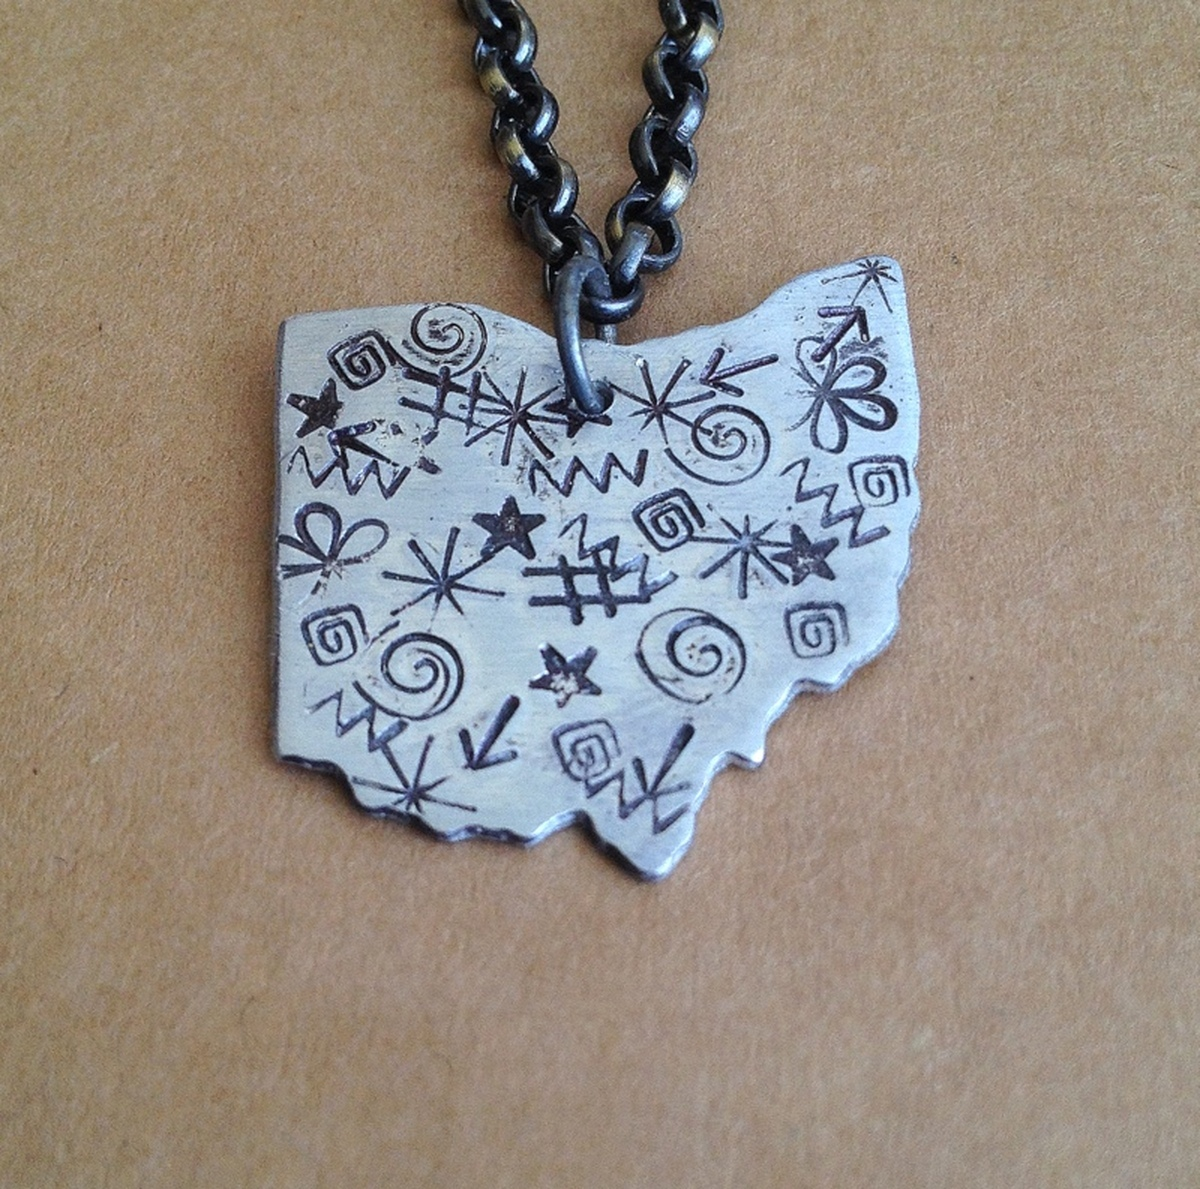 Ohio Necklace 11 (large view)